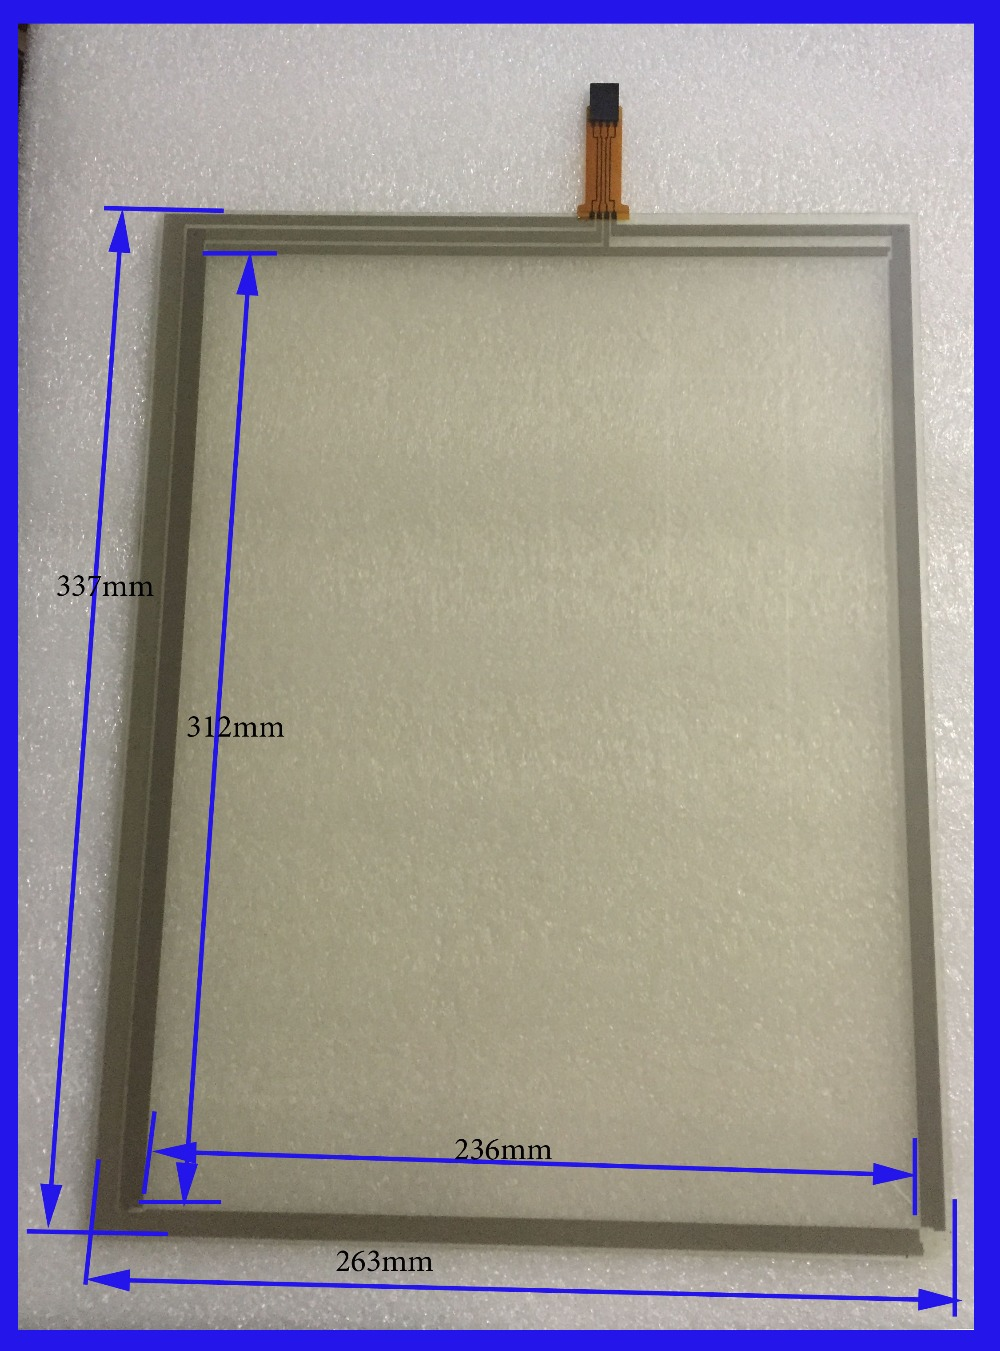 ZhiYuSun 337mm*263mm 17 Inch Touch Screen panels 4 wire resistive USB touch panel overlay kit  Free Shipping<br>